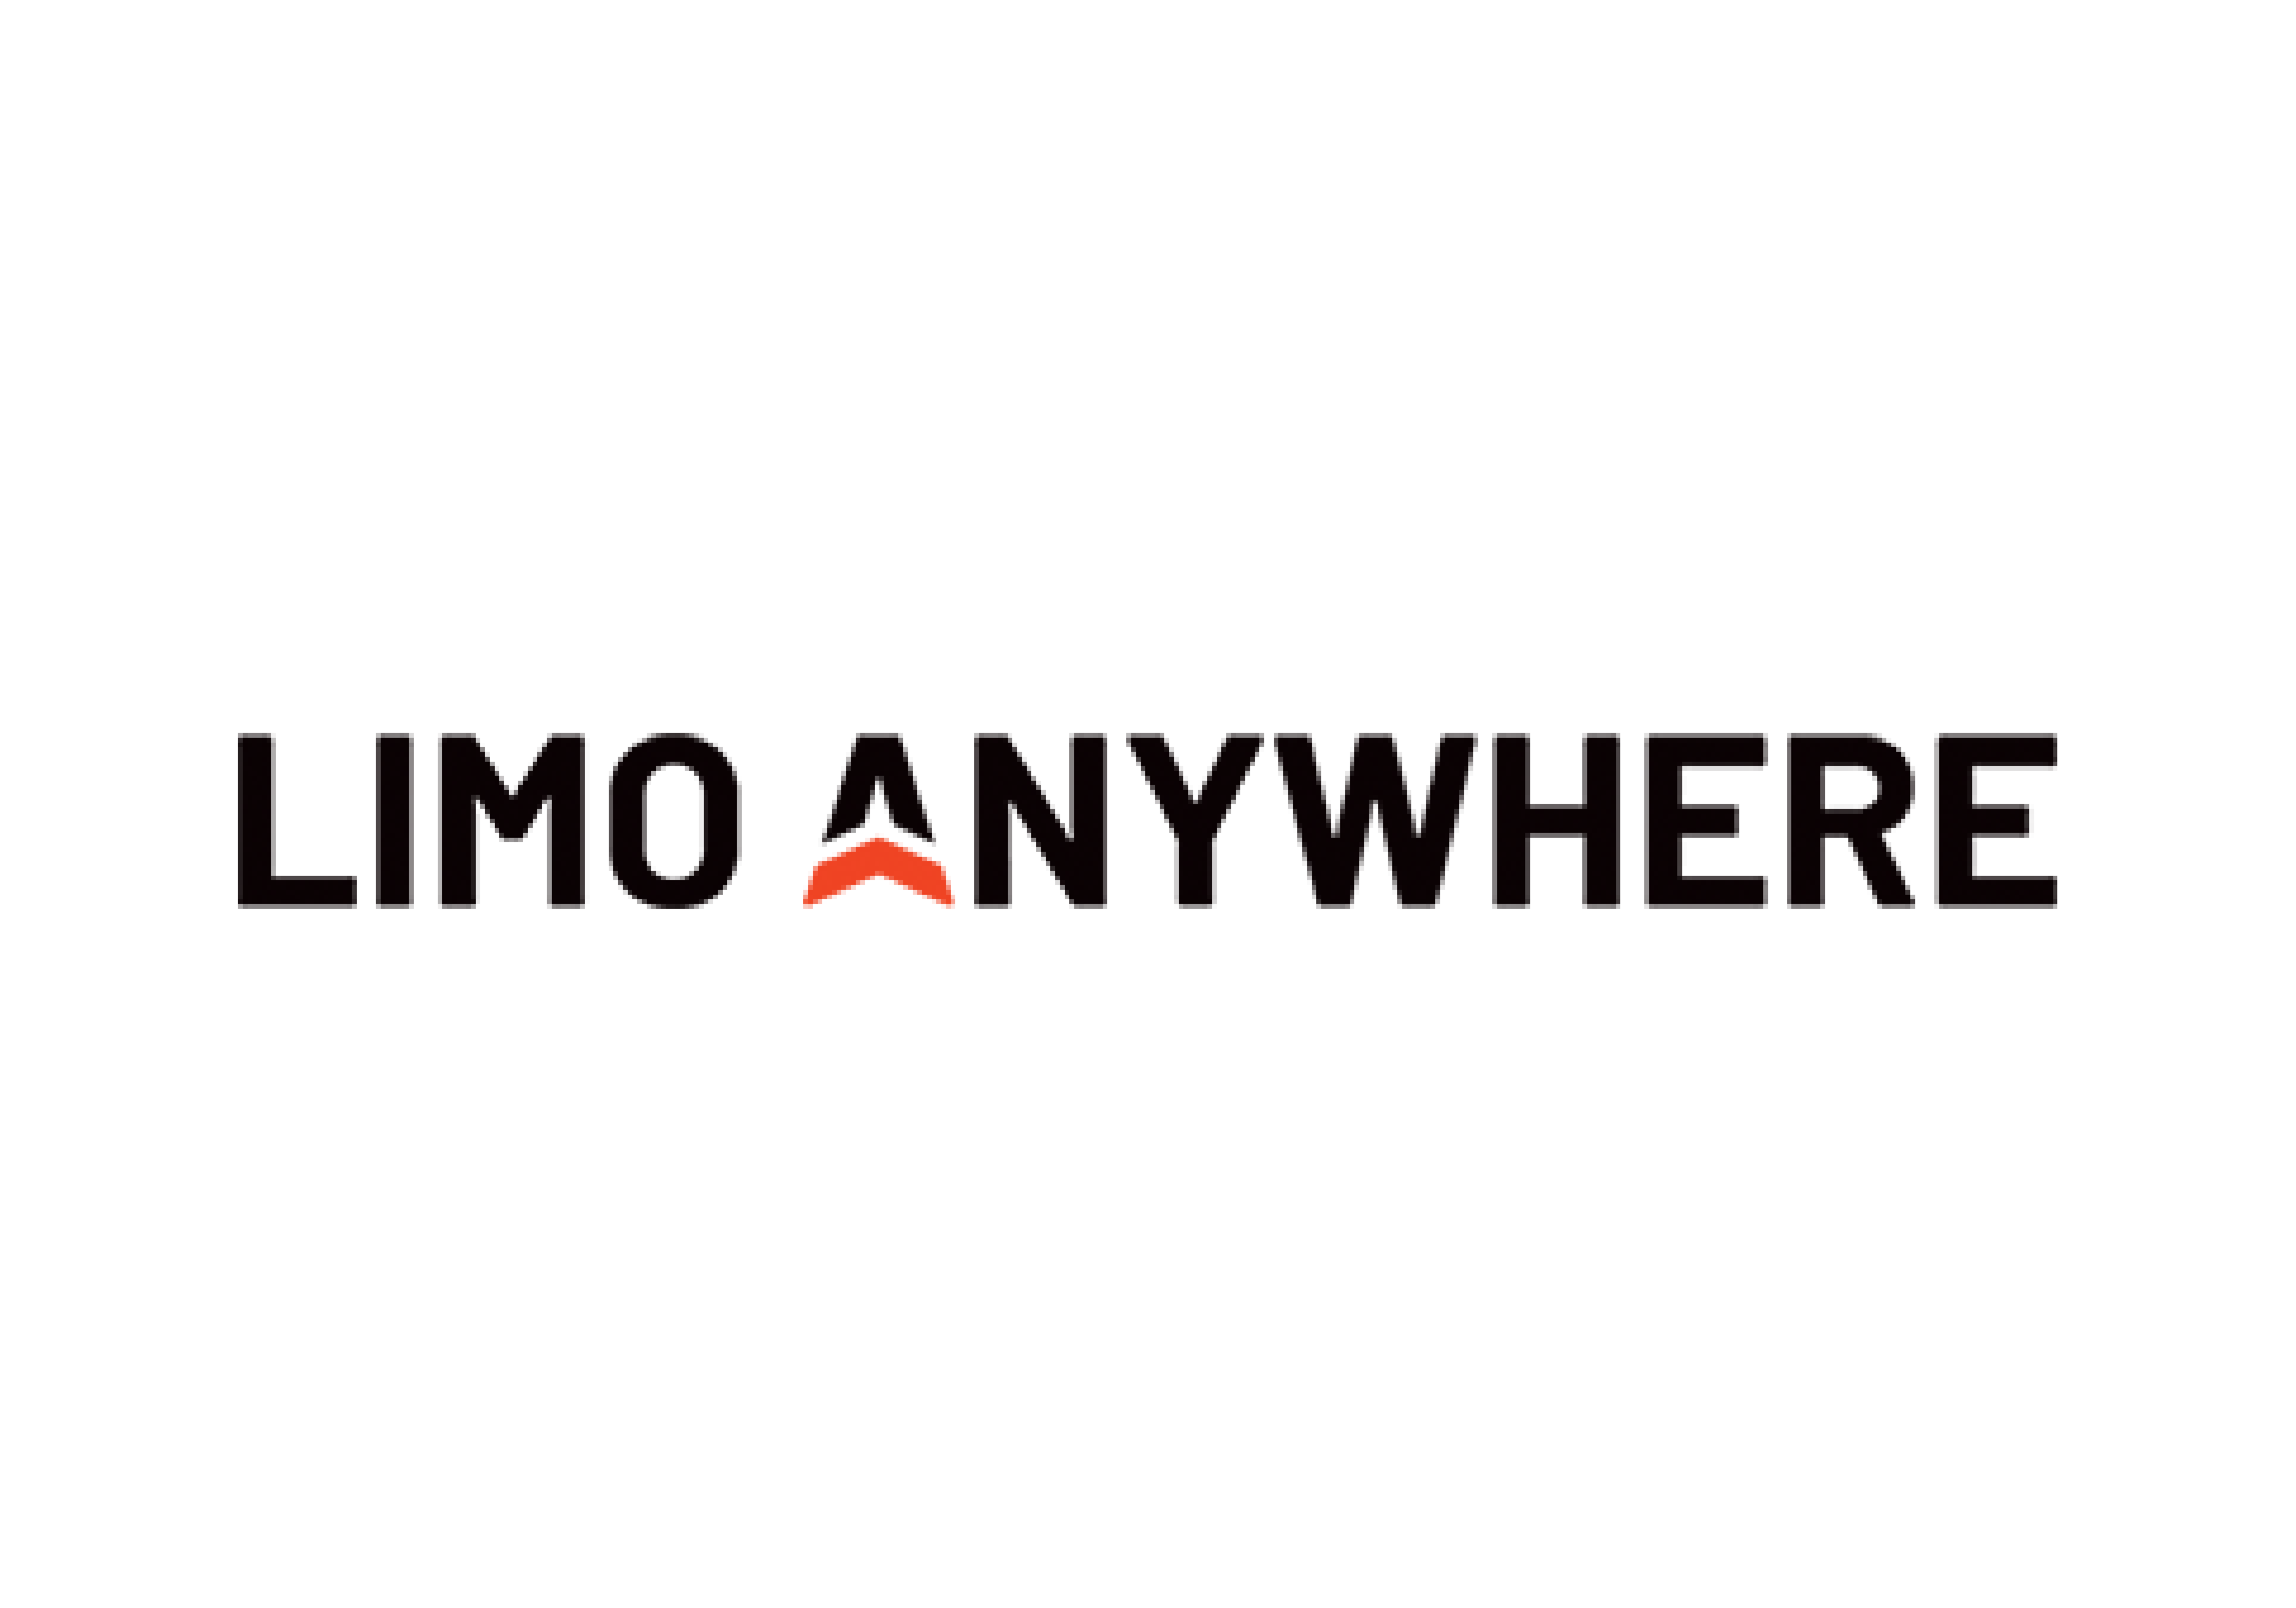 limo anywhere credit card processing